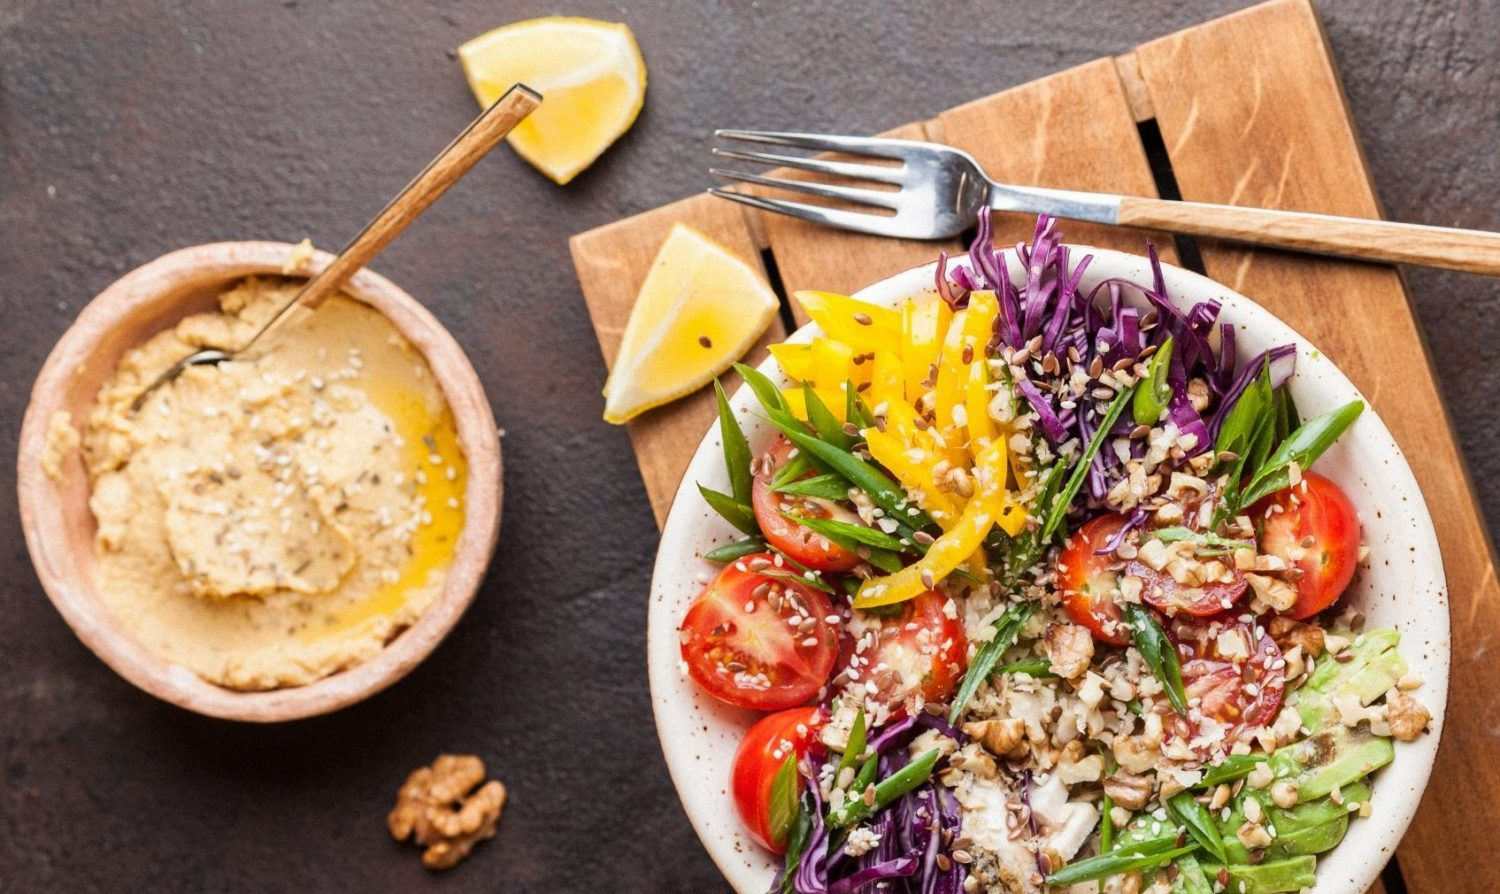 Health Insurance Company to Offer Discounted Rates for Vegans